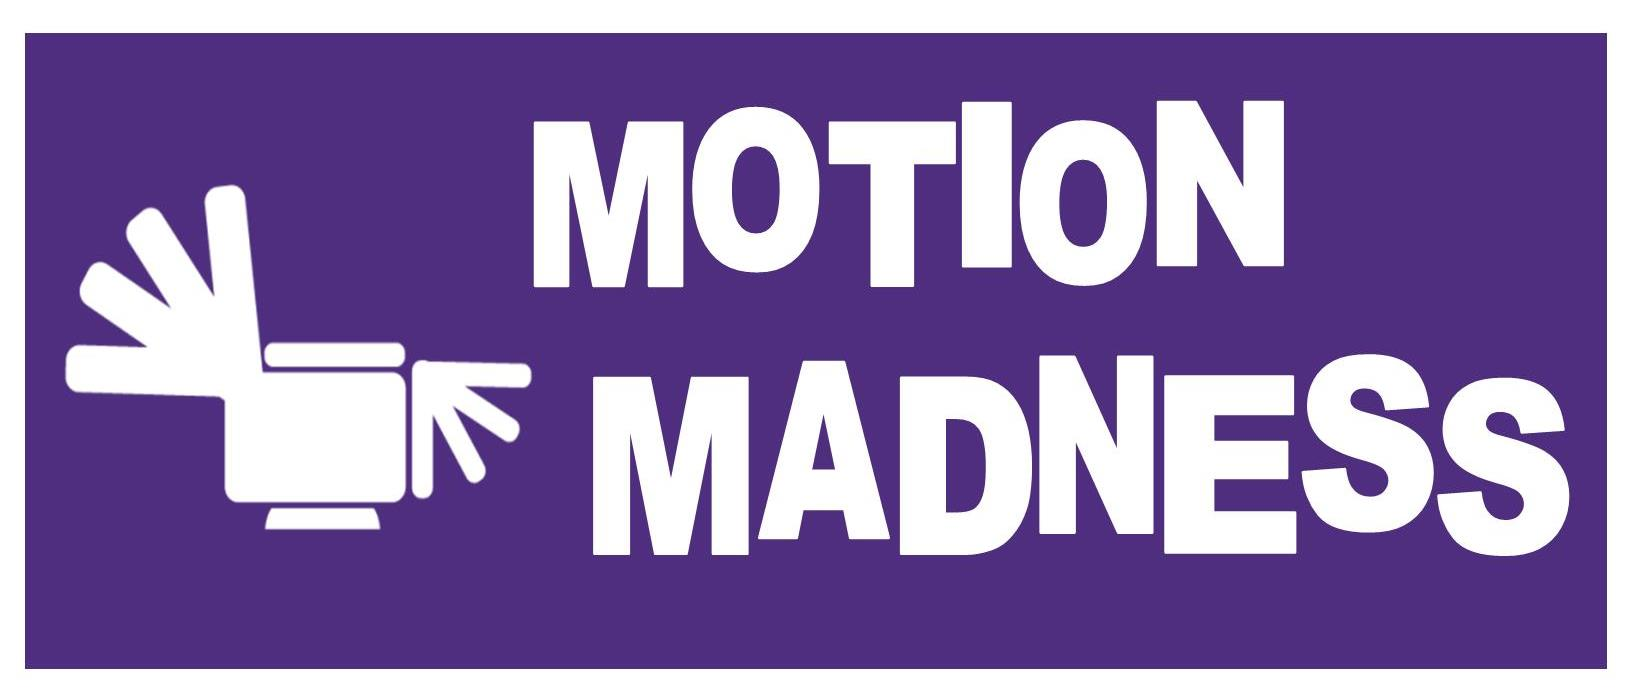 Motion Madness